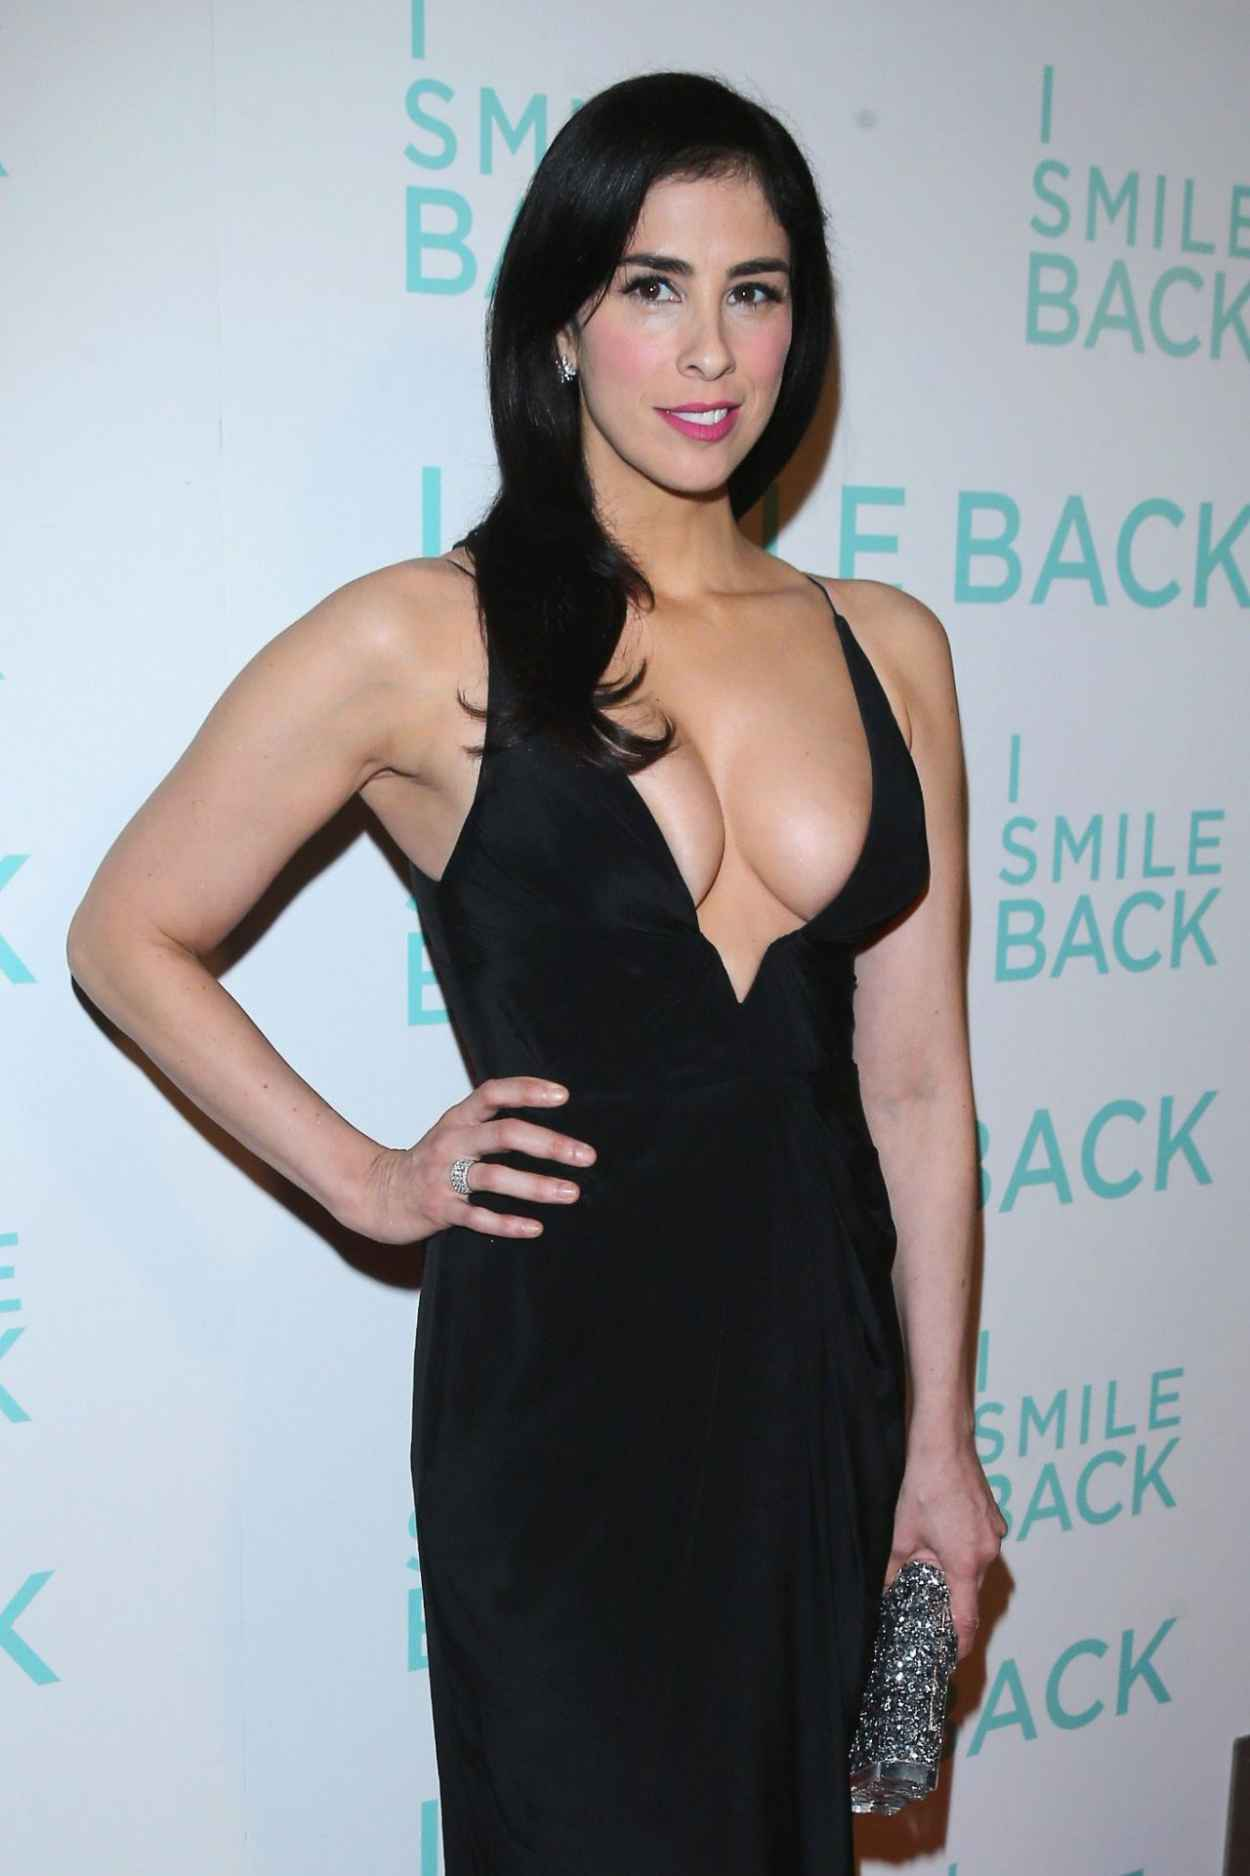 Sarah Silverman - I Smile Back Premiere in Hollywood-4